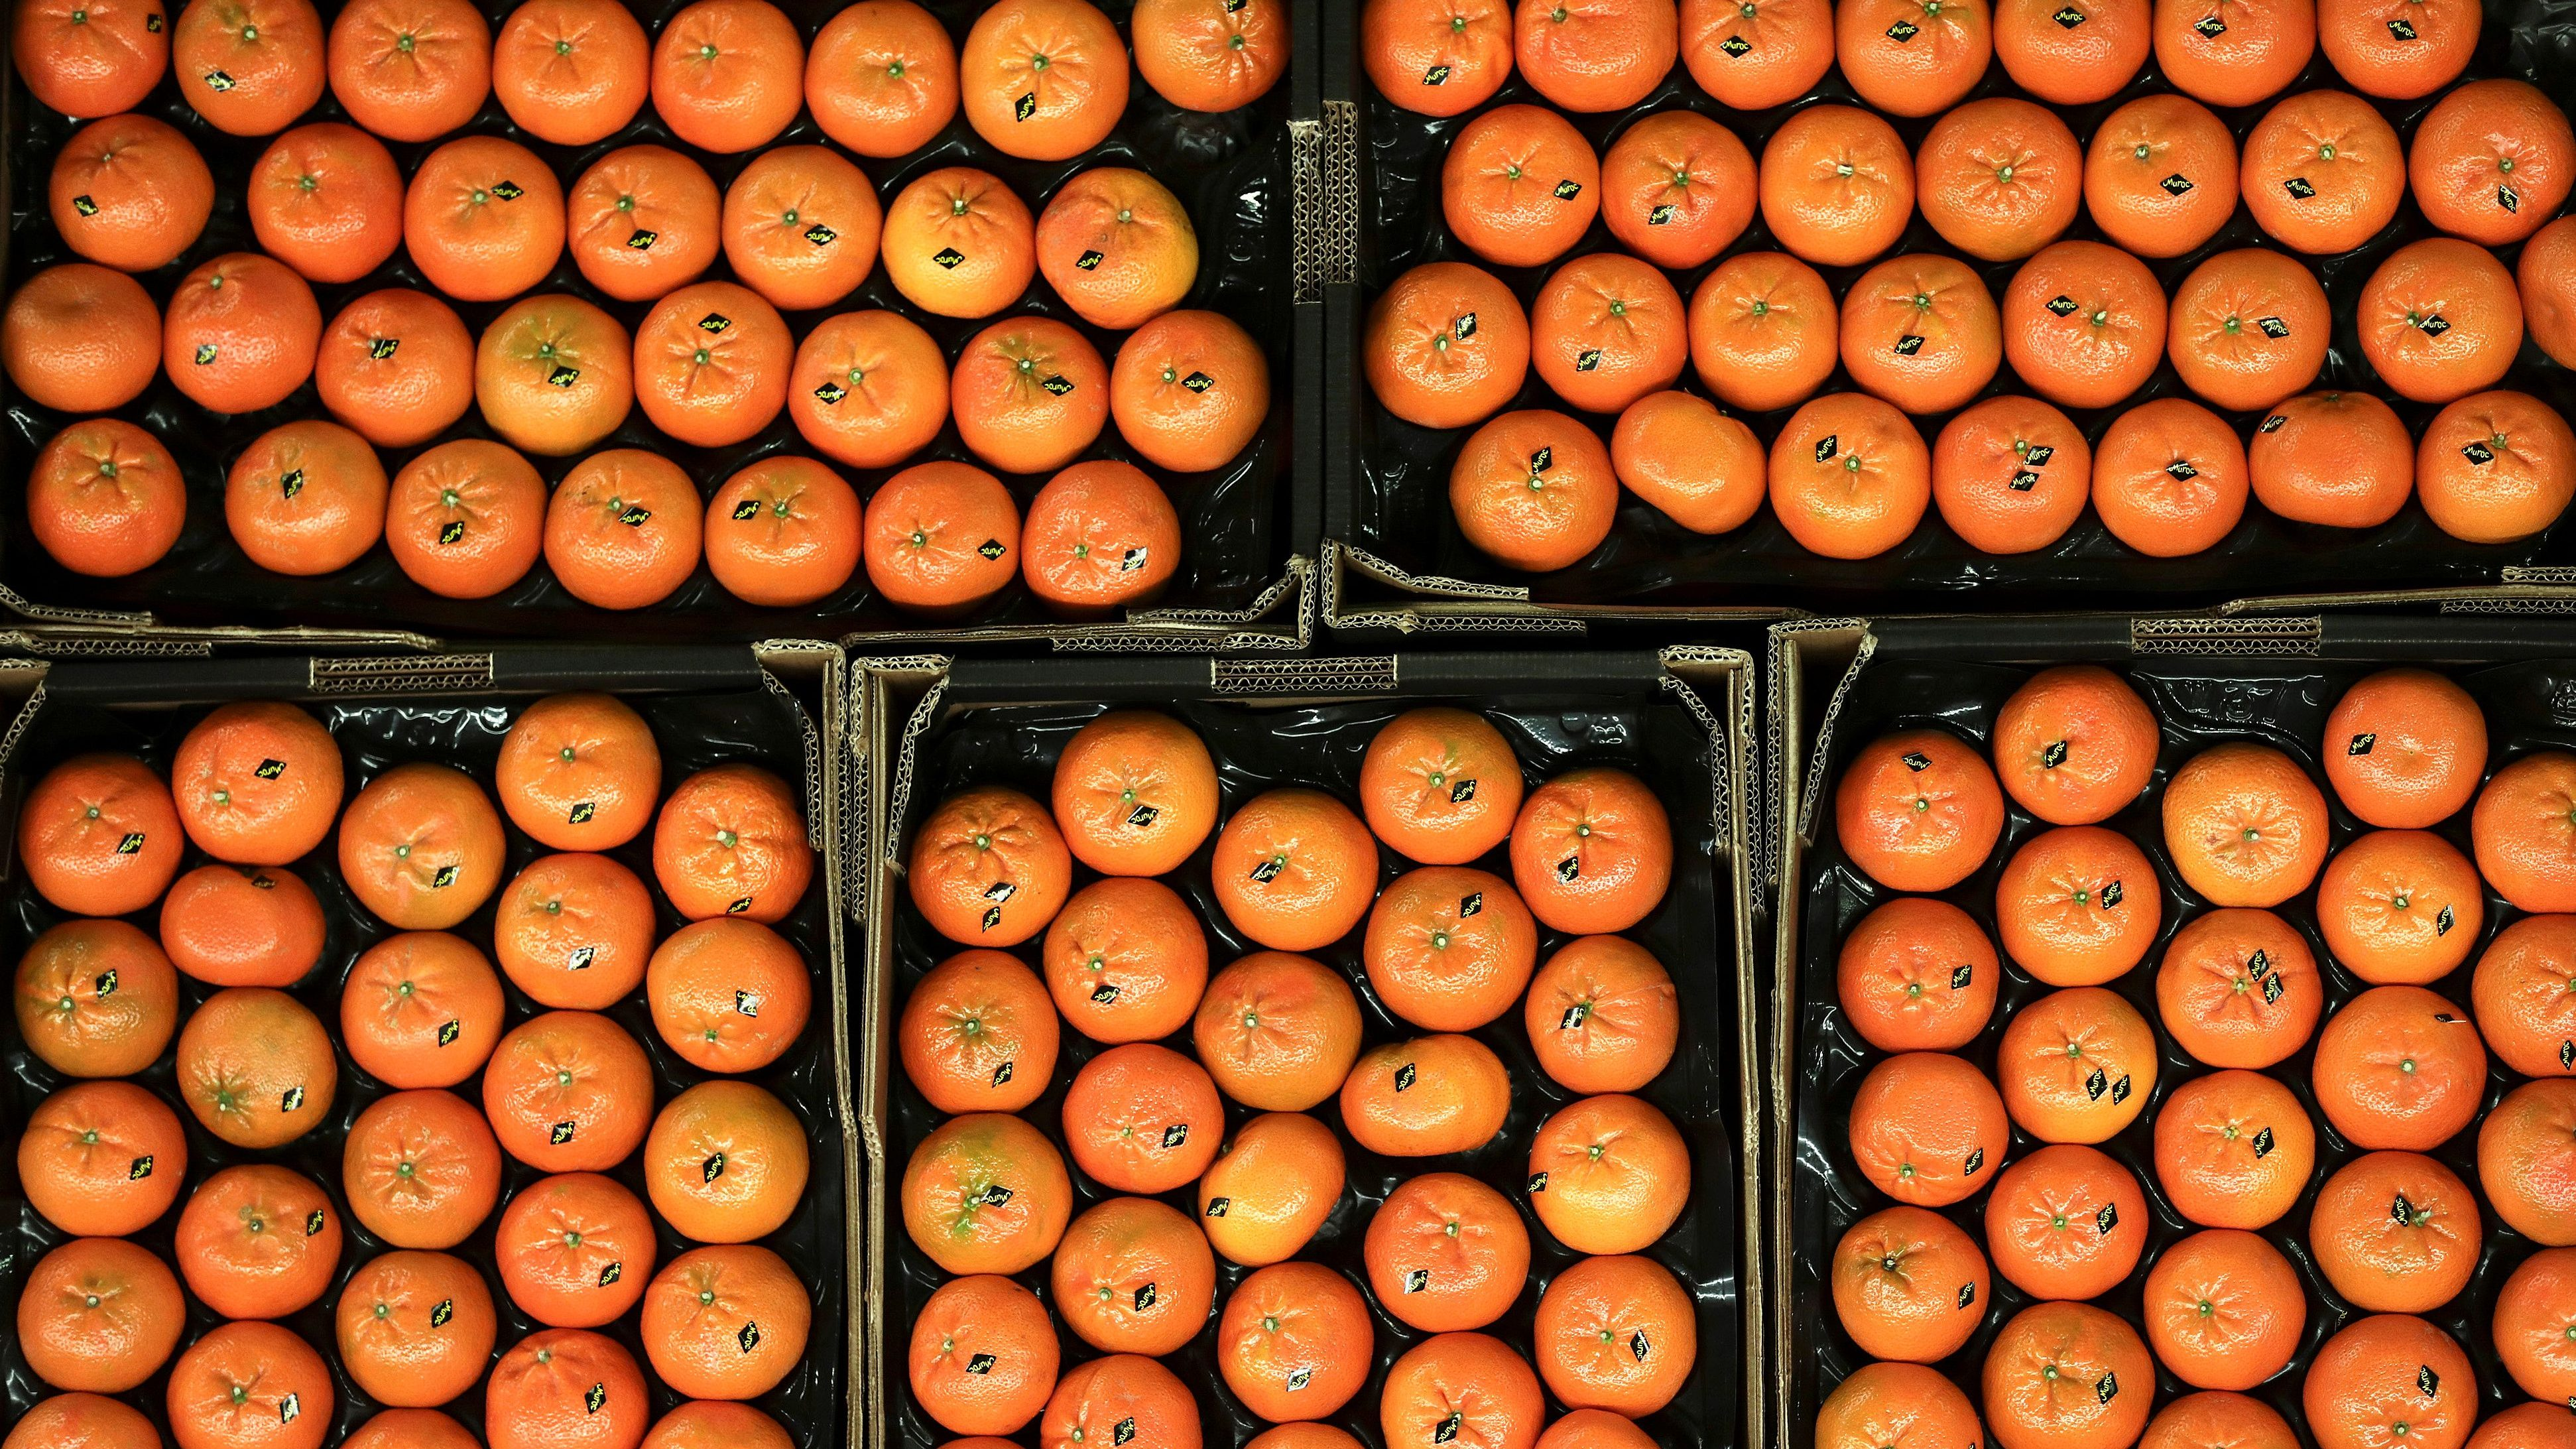 Mandarins sit on display at New Covent Garden wholesale market in London, Britain February 3, 2018.